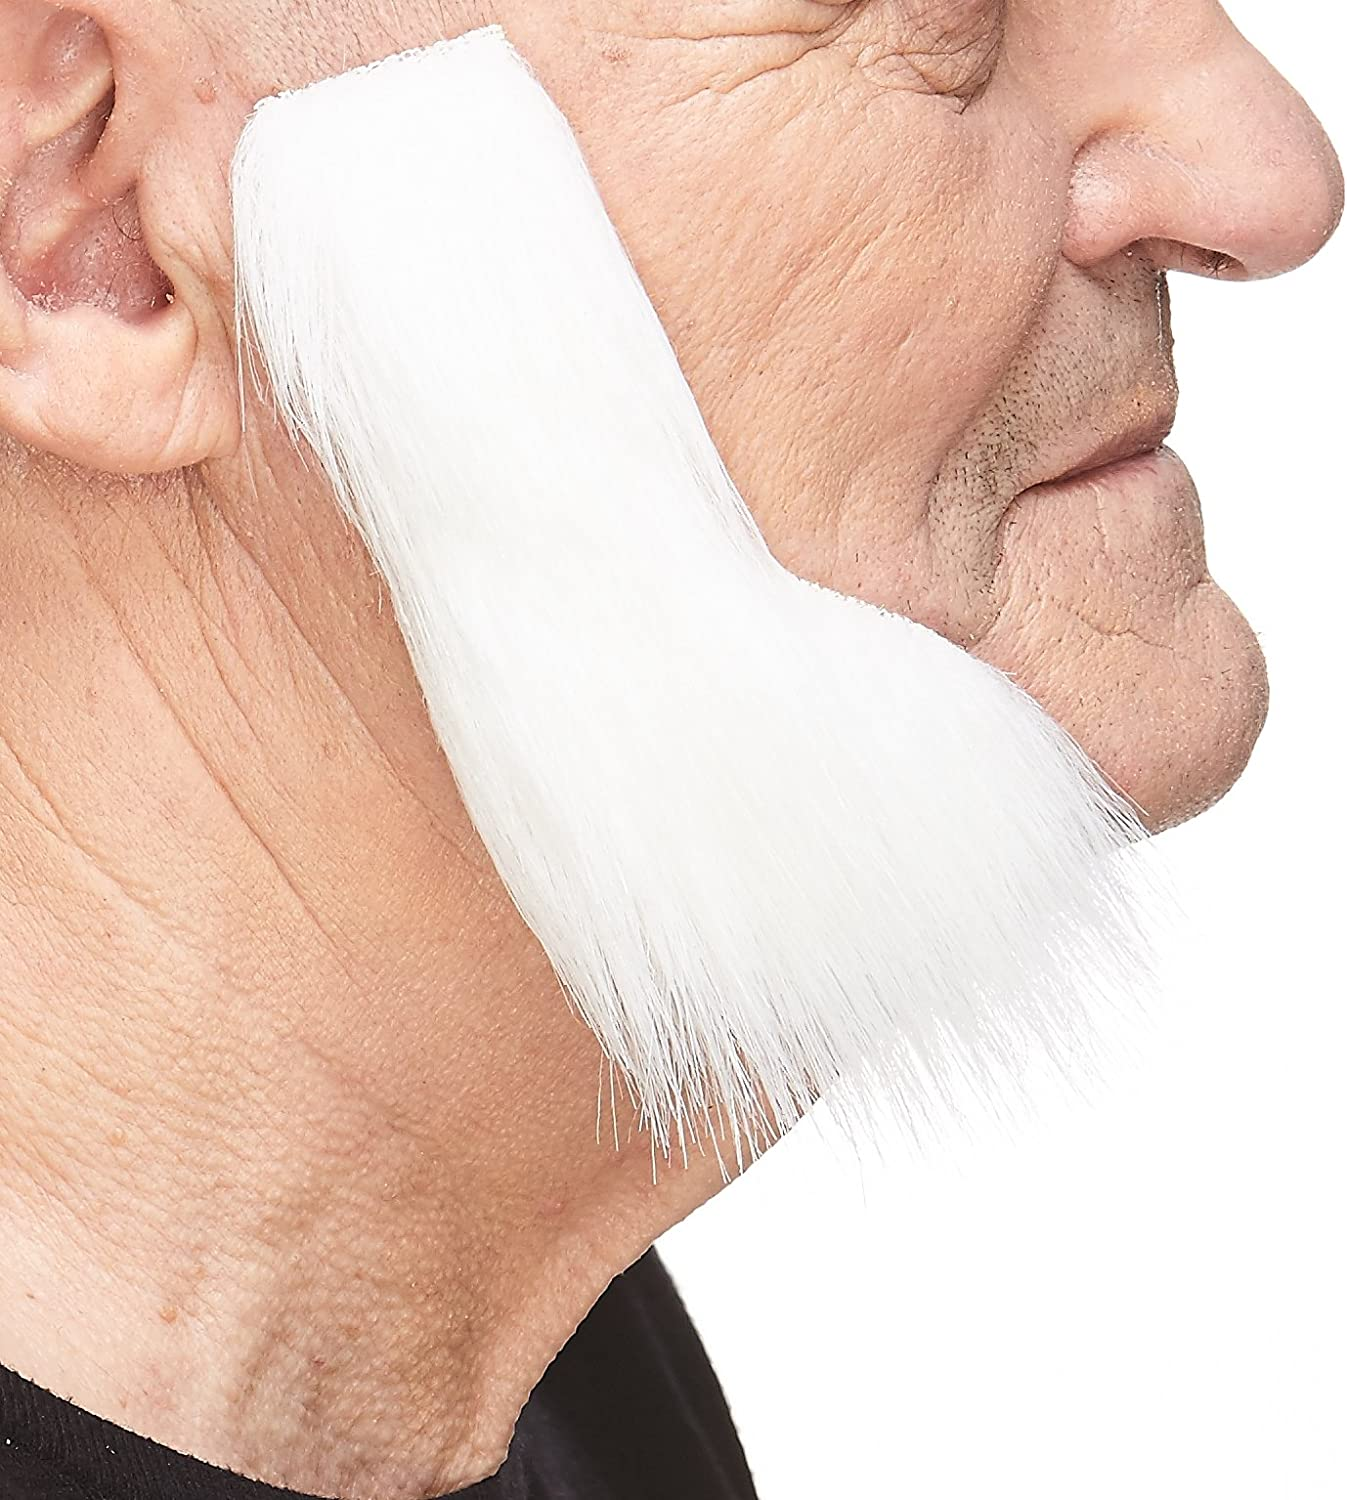 Costume Accessory for Adults Novelty Mustaches Self Adhesive False Facial Hair Fake Mutton Chops Sideburns